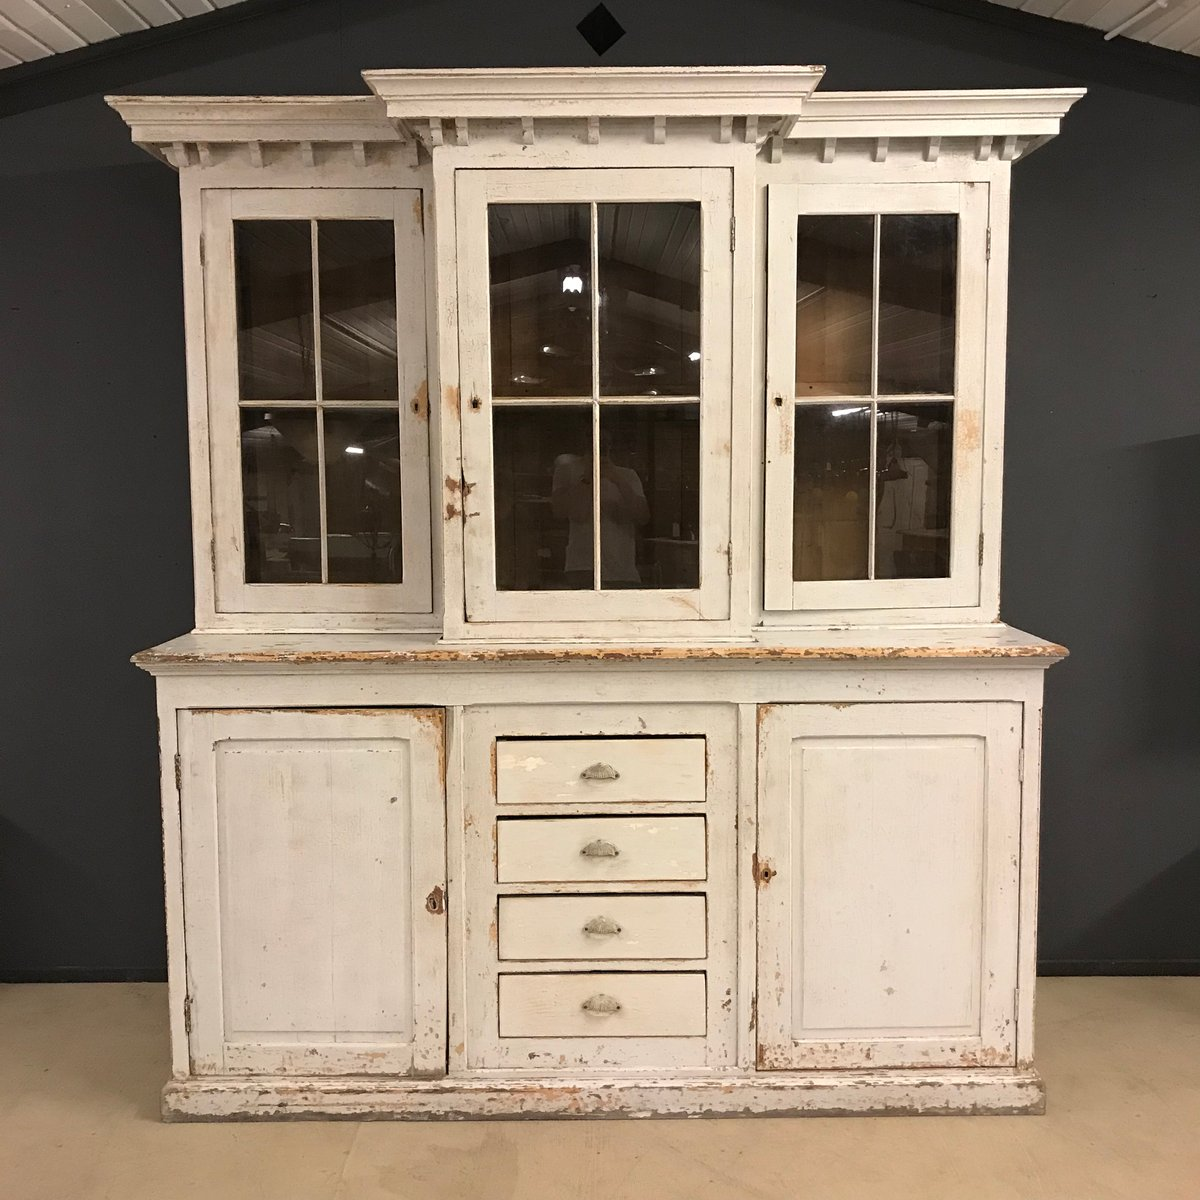 Large French Antique Buffet Cabinet, 19th Century - Large French Antique Buffet Cabinet, 19th Century For Sale At Pamono